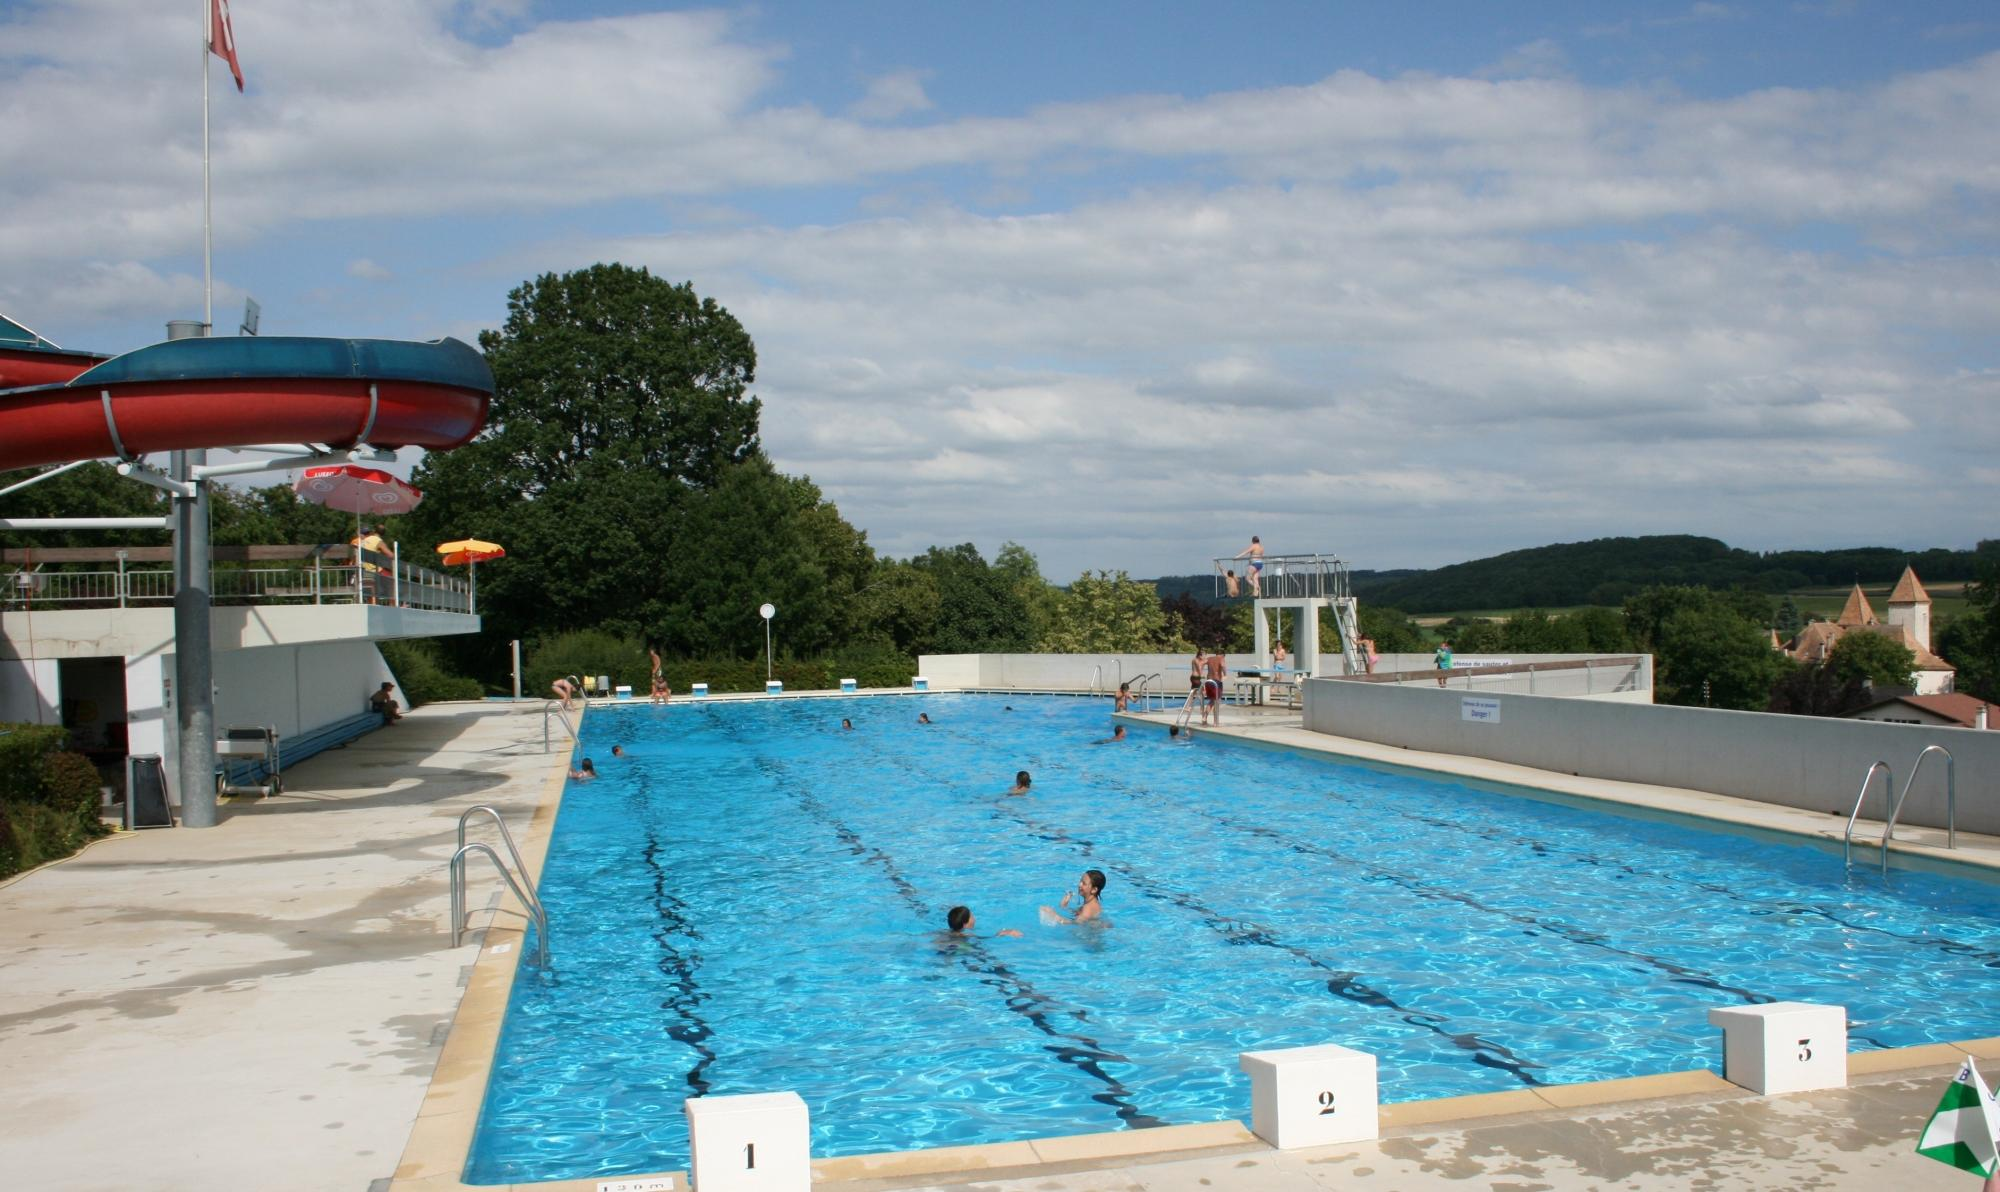 Camping des buis morges r gion suisse for Camping nyons piscine